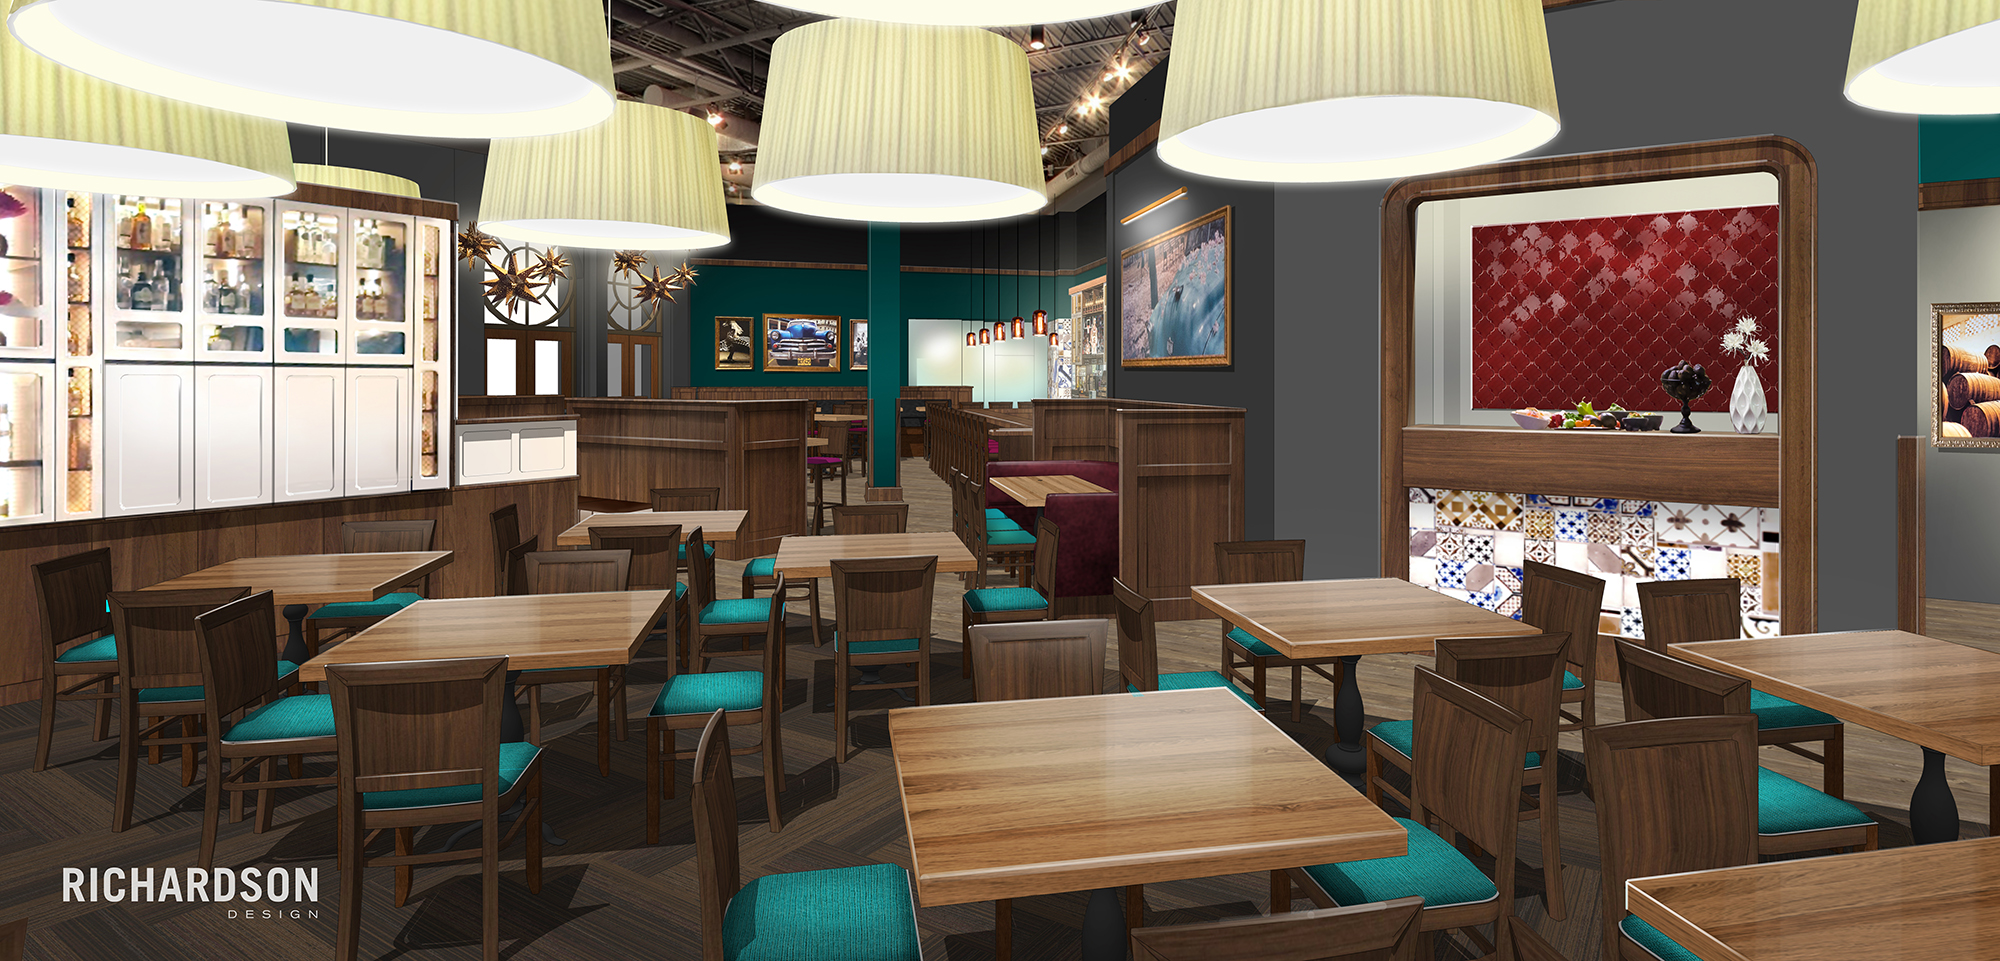 Here You See What Our Main Dining Room Will Look Like The E With Maroon Tile On Right Hand Side Be New Guacamole Bar